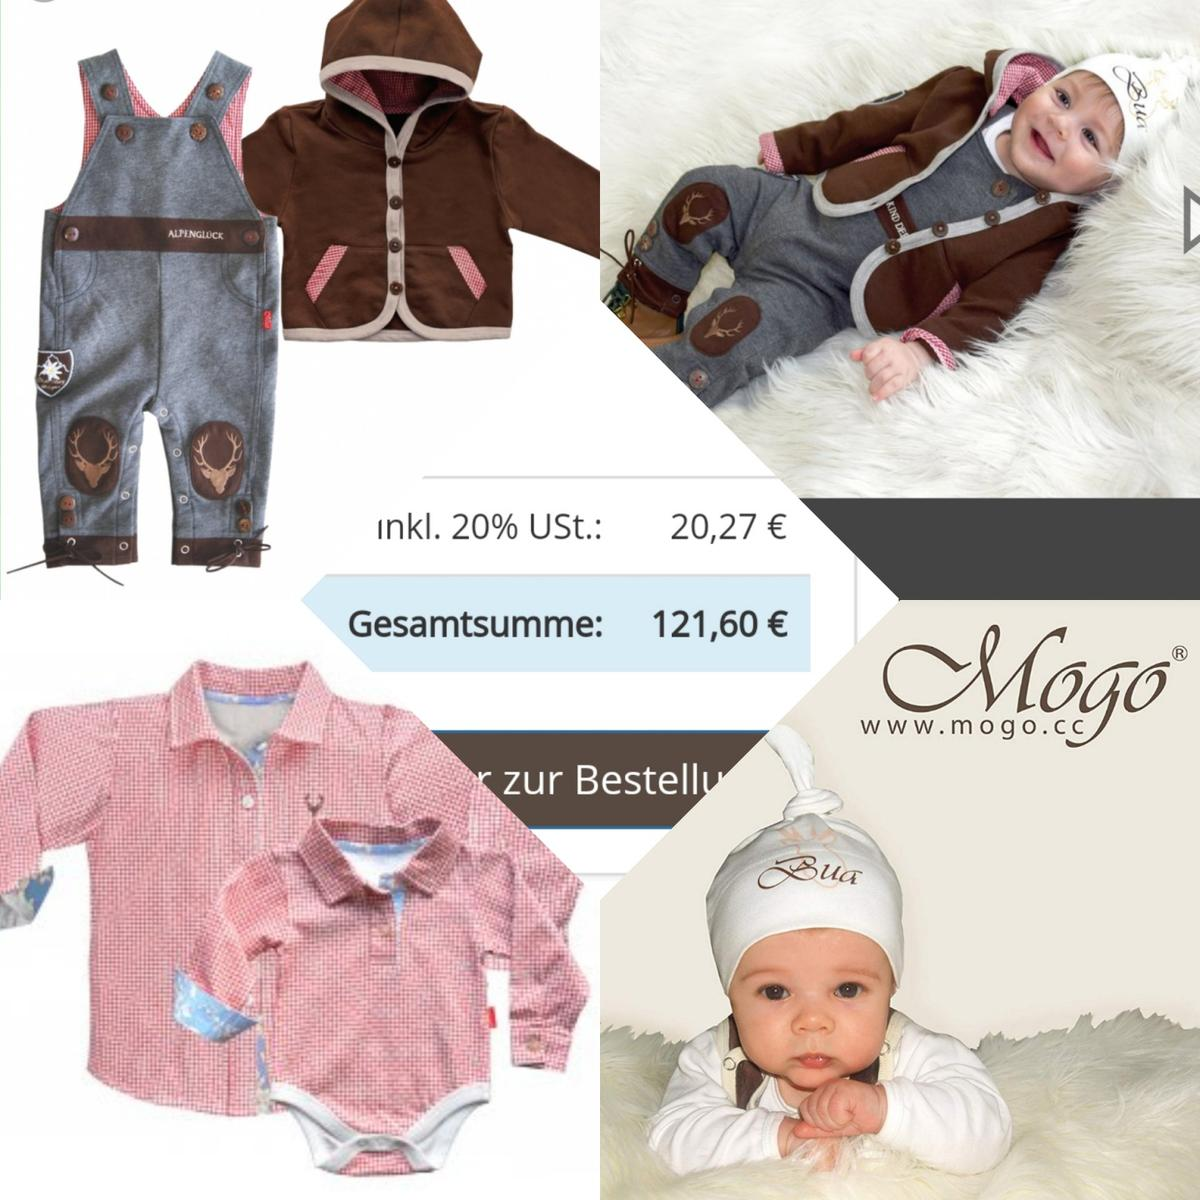 Baby Outfit Taufe Trachten Bekleidung